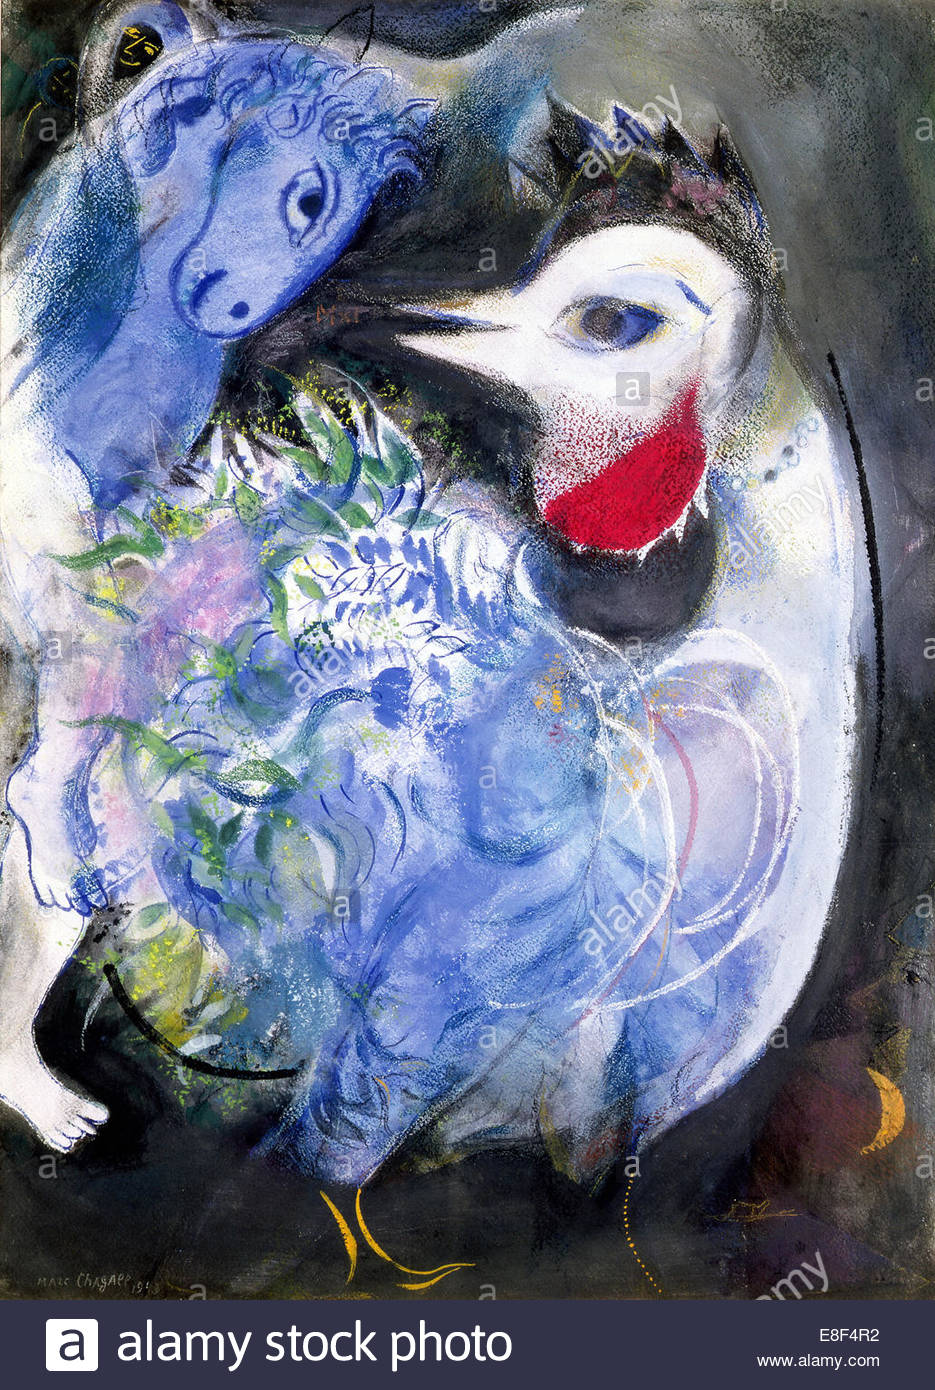 Feathers In Bloom. Artist: Chagall, Marc (1887-1985) - Stock Image